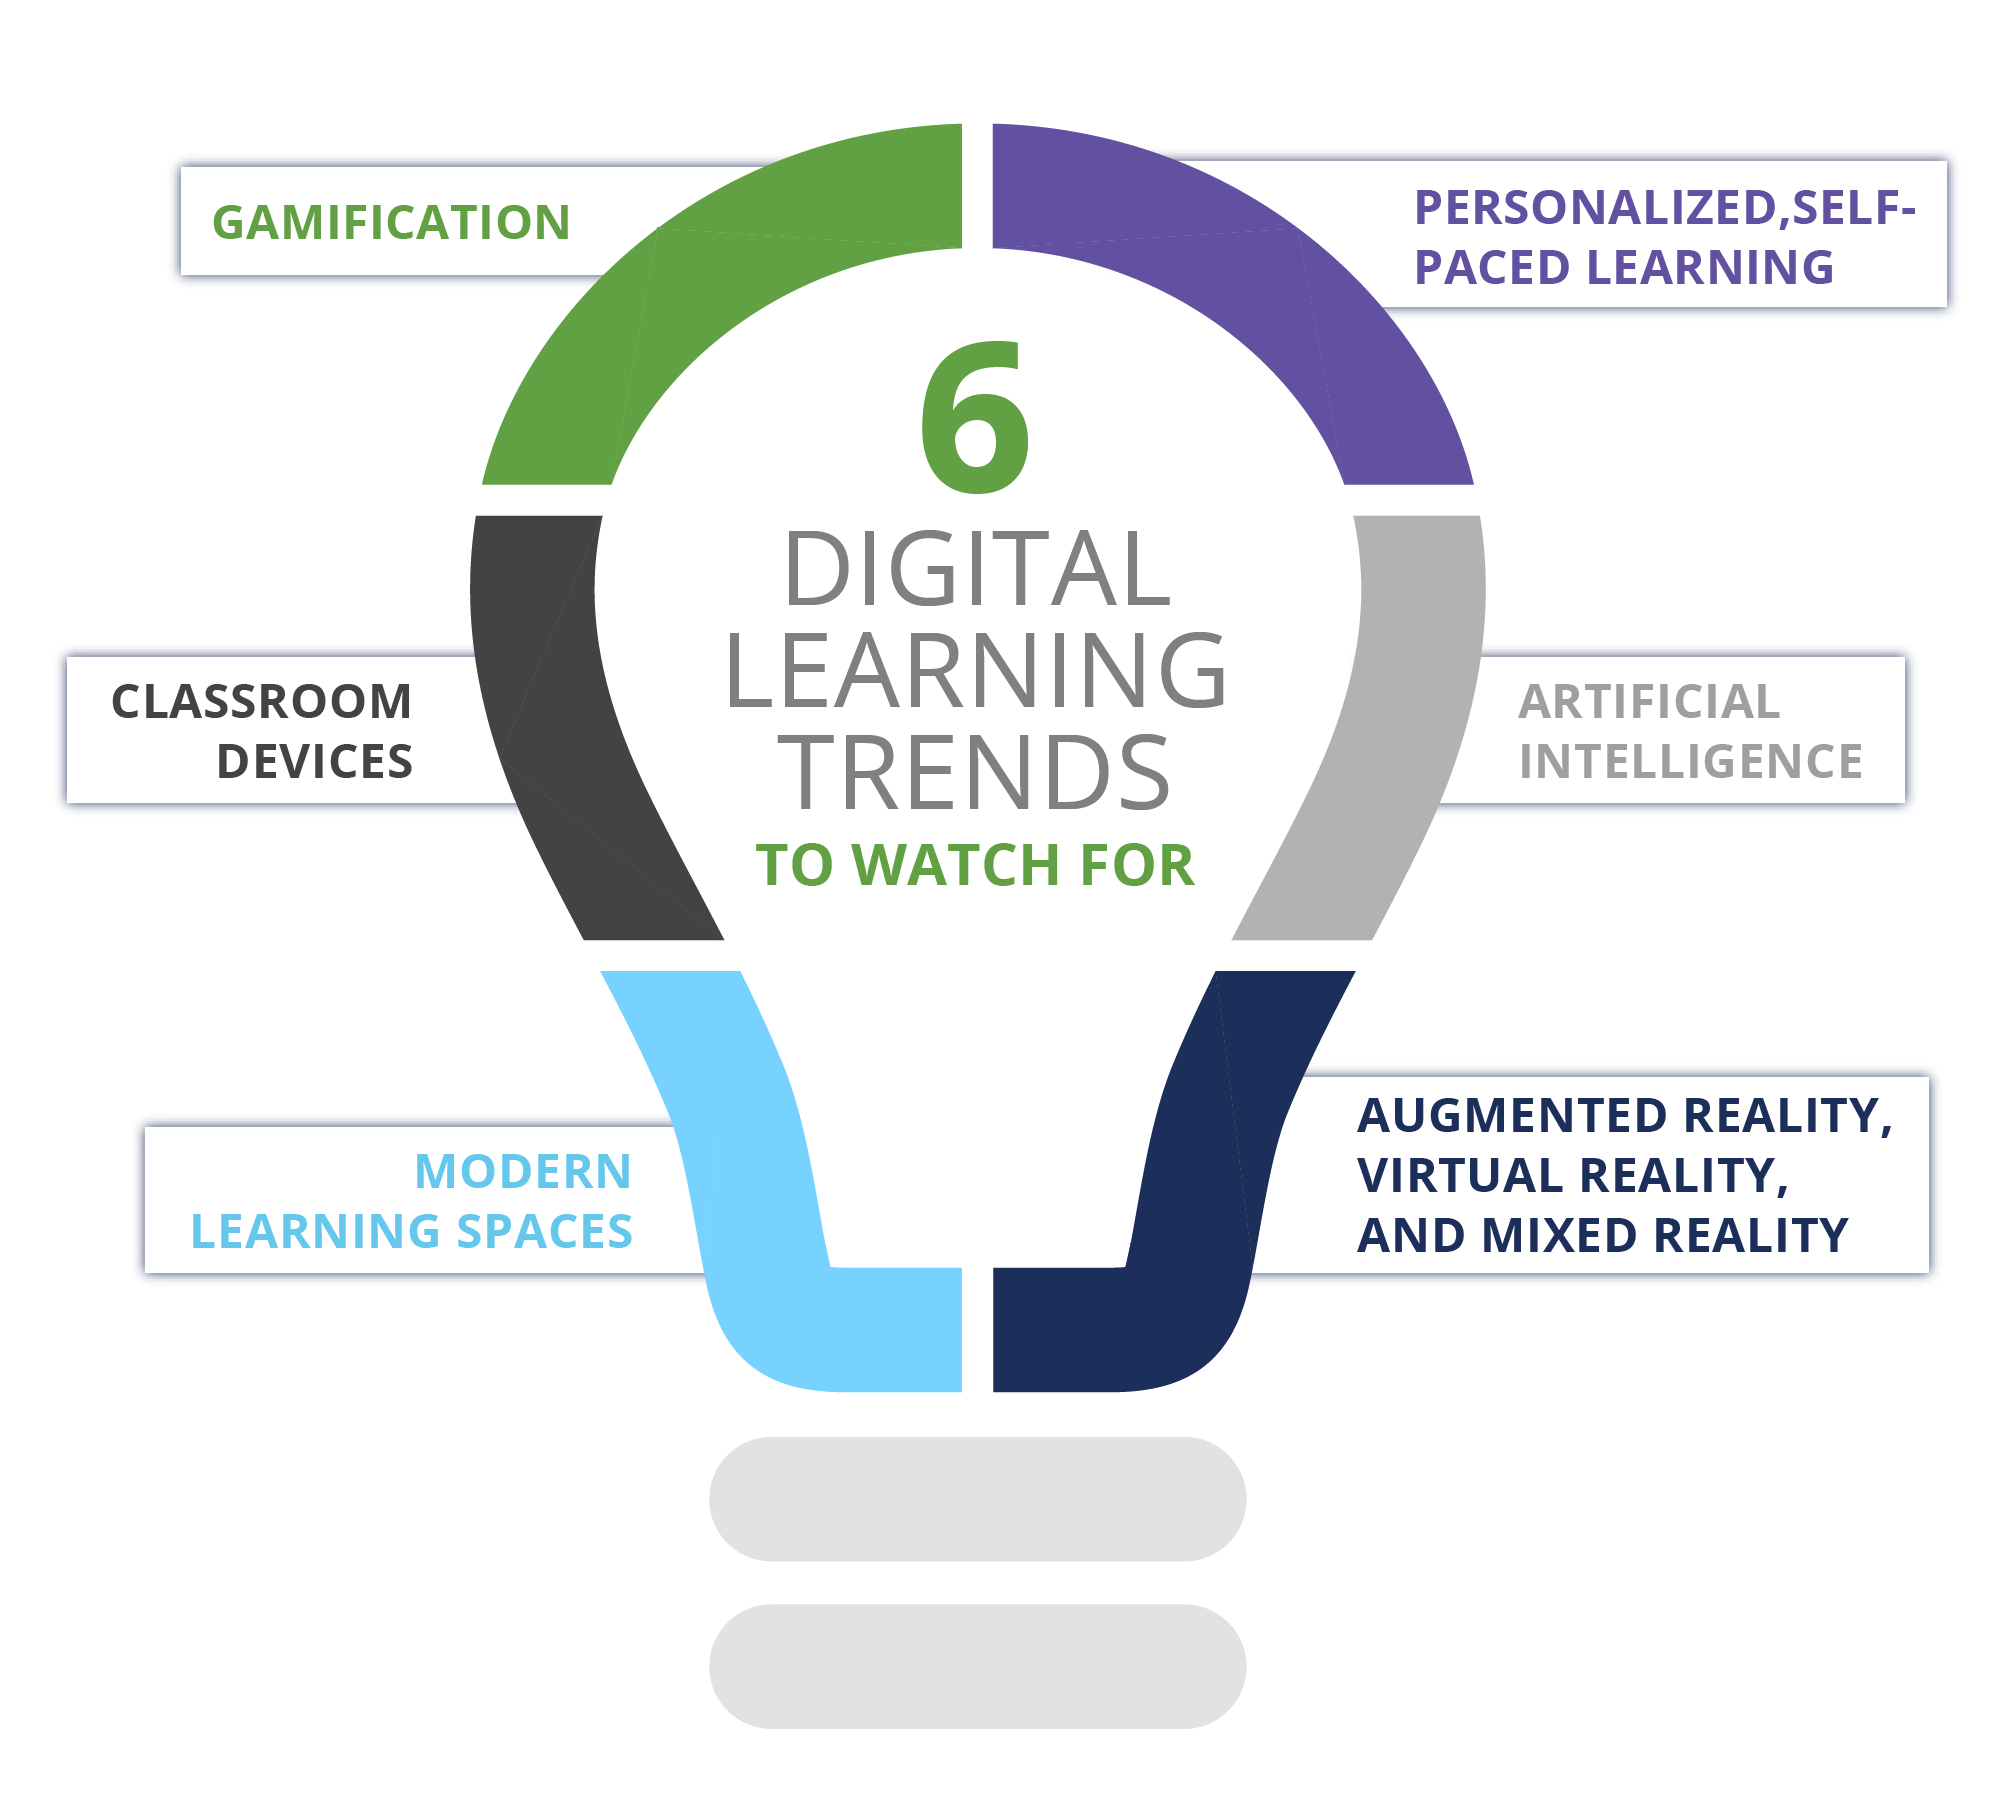 6 digital learning trends to watch for